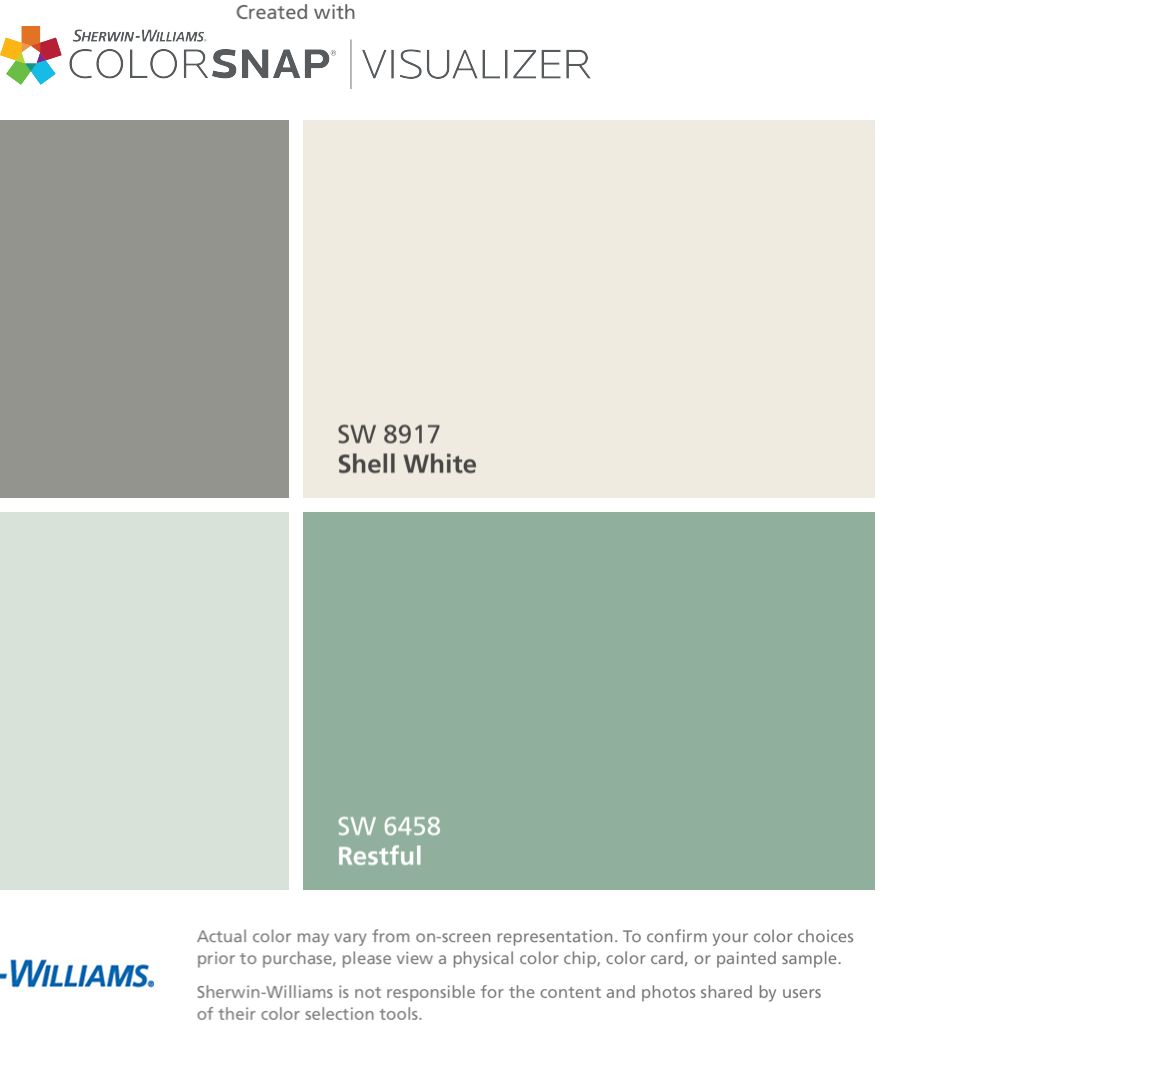 Colorsnap app for Sherwin williams exterior paint color visualizer